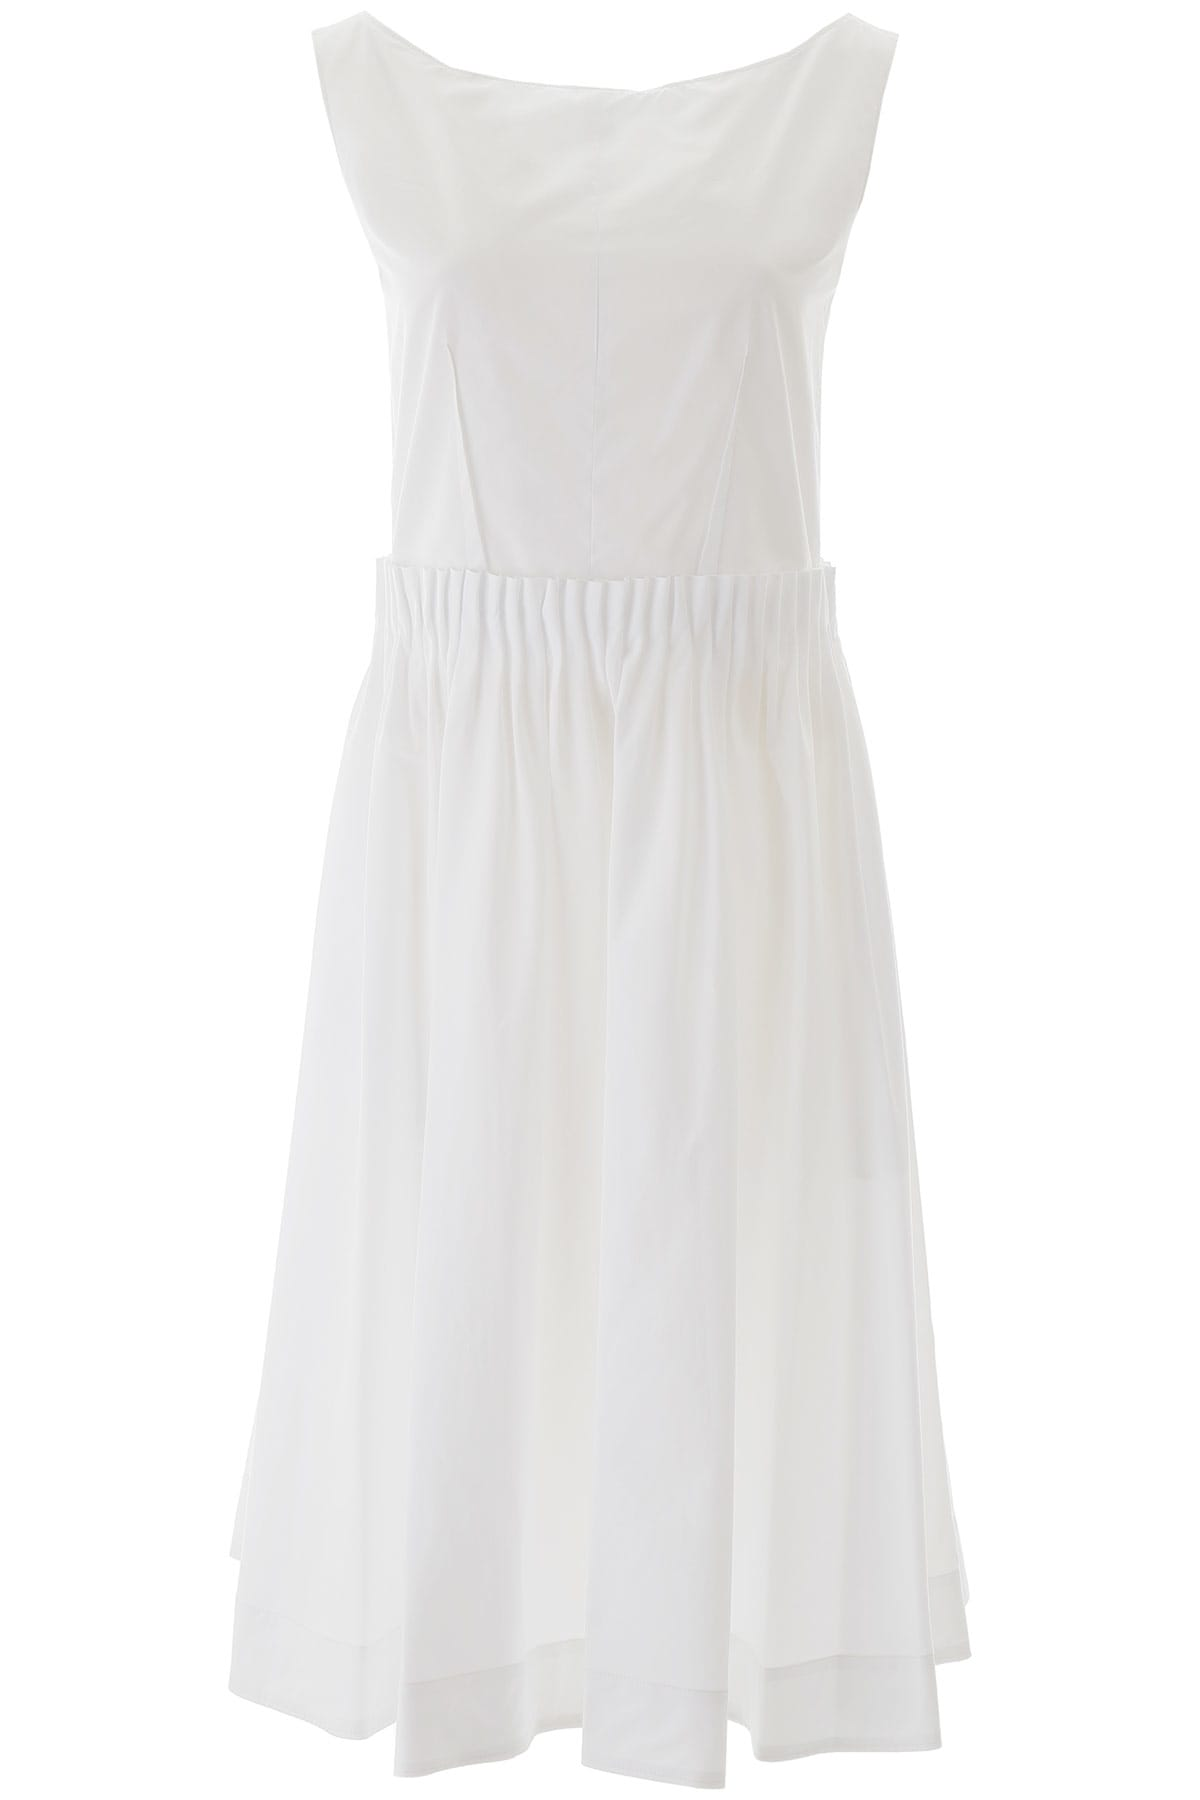 Buy Dress With Buttoned Back online, shop Marni with free shipping